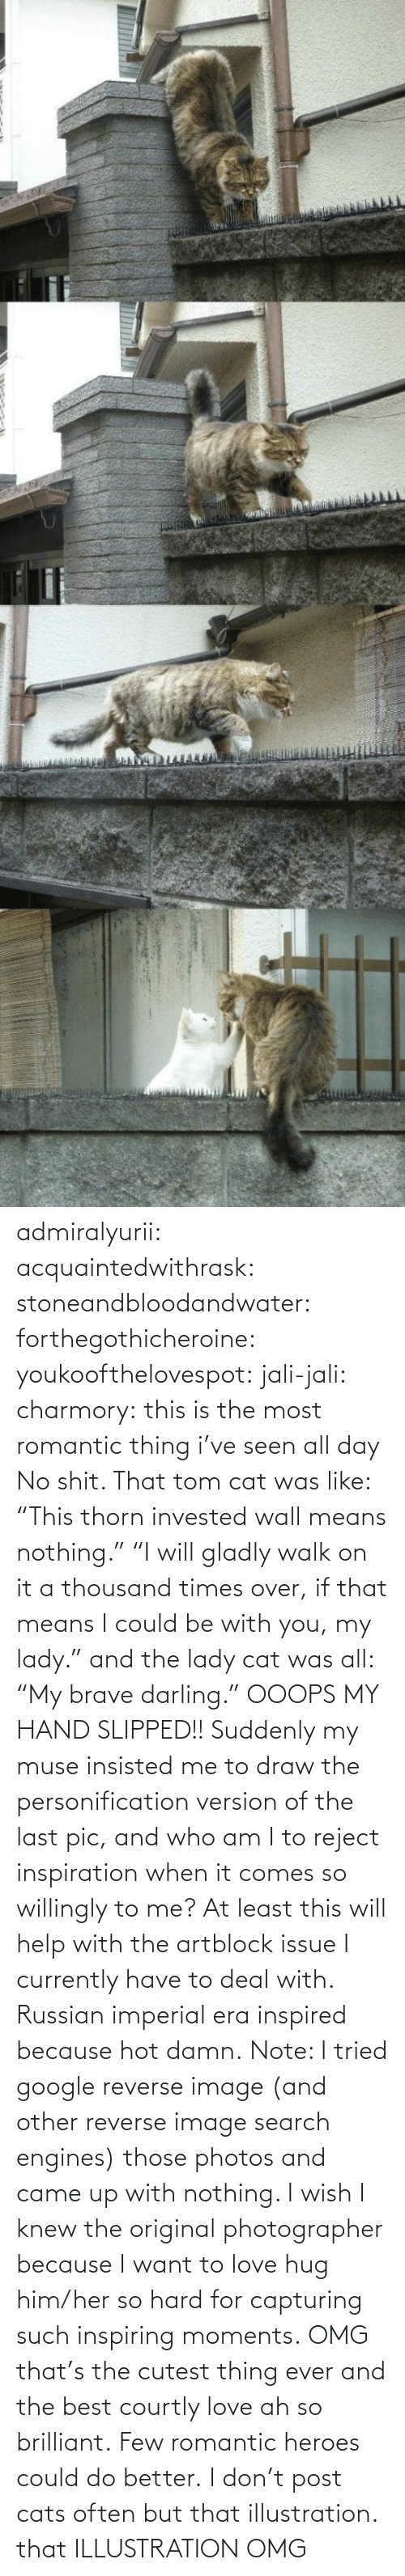 "hug: admiralyurii: acquaintedwithrask:  stoneandbloodandwater:  forthegothicheroine:  youkoofthelovespot:  jali-jali:  charmory:  this is the most romantic thing i've seen all day  No shit. That tom cat was like: ""This thorn invested wall means nothing."" ""I will gladly walk on it a thousand times over, if that means I could be with you, my lady."" and the lady cat was all: ""My brave darling."" OOOPS MY HAND SLIPPED!!  Suddenly my muse insisted me to draw the personification version of the last pic, and who am I to reject inspiration when it comes so willingly to me? At least this will help with the artblock issue I currently have to deal with. Russian imperial era inspired because hot damn. Note: I tried google reverse image (and other reverse image search engines) those photos and came up with nothing. I wish I knew the original photographer because I want to love hug him/her so hard for capturing such inspiring moments.  OMG that's the cutest thing ever and the best courtly love ah so brilliant.  Few romantic heroes could do better.  I don't post cats often but that illustration.  that ILLUSTRATION    OMG"